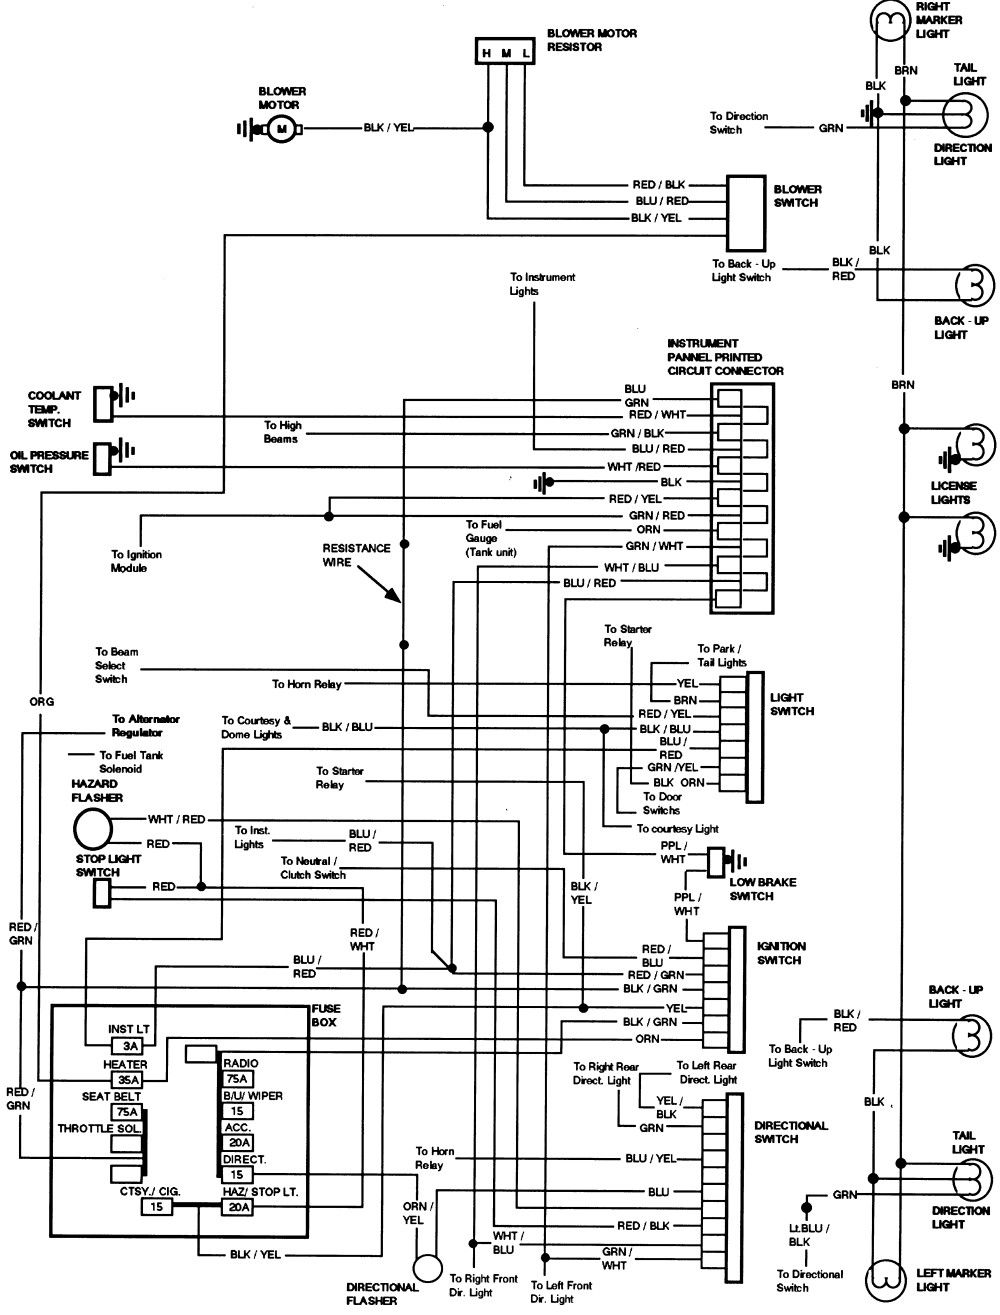 2006 Ford F350 Wiring Diagram Data Wiring Diagrams Regarding Ford F250 Wiring Diagram Electrical Wiring Diagram Electrical Diagram Trailer Wiring Diagram